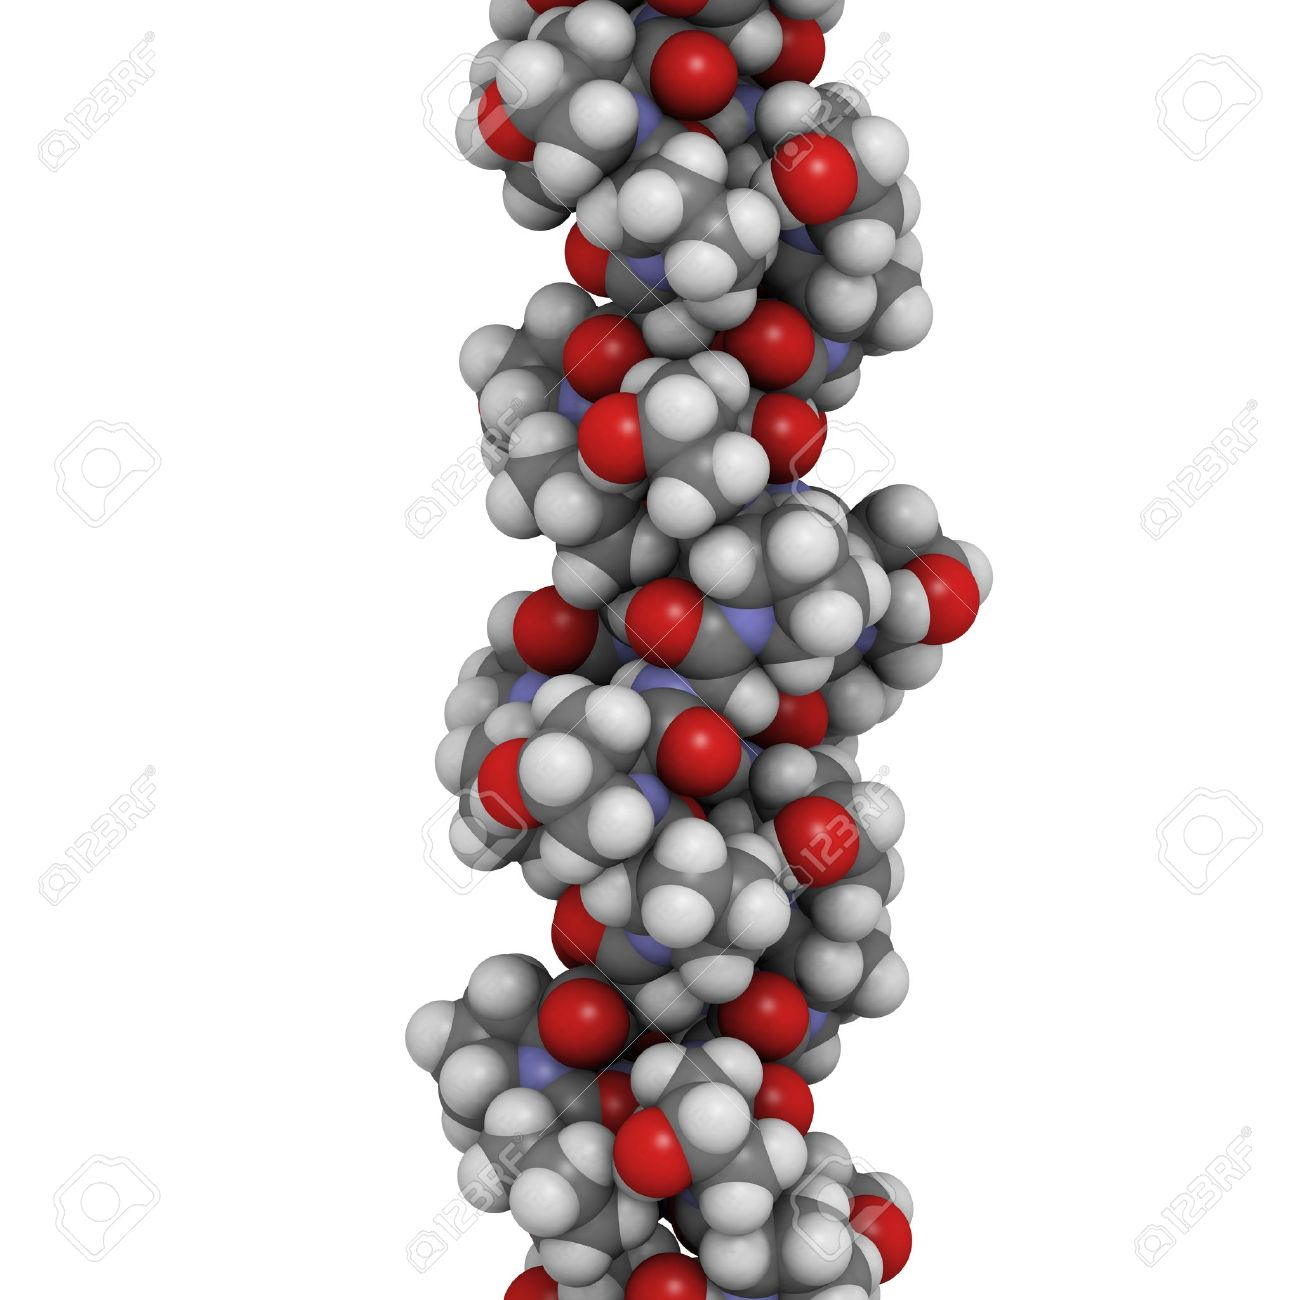 Chemical structure of a collagen model protein. Collagen adopts a characteristic triple helix structure. Collagen is a major component of many tissues, including skin, bone and cartilage. Collagen is used dermal filler in the treatment of wrinkles and skin ageing. Stock Photo - 16083443